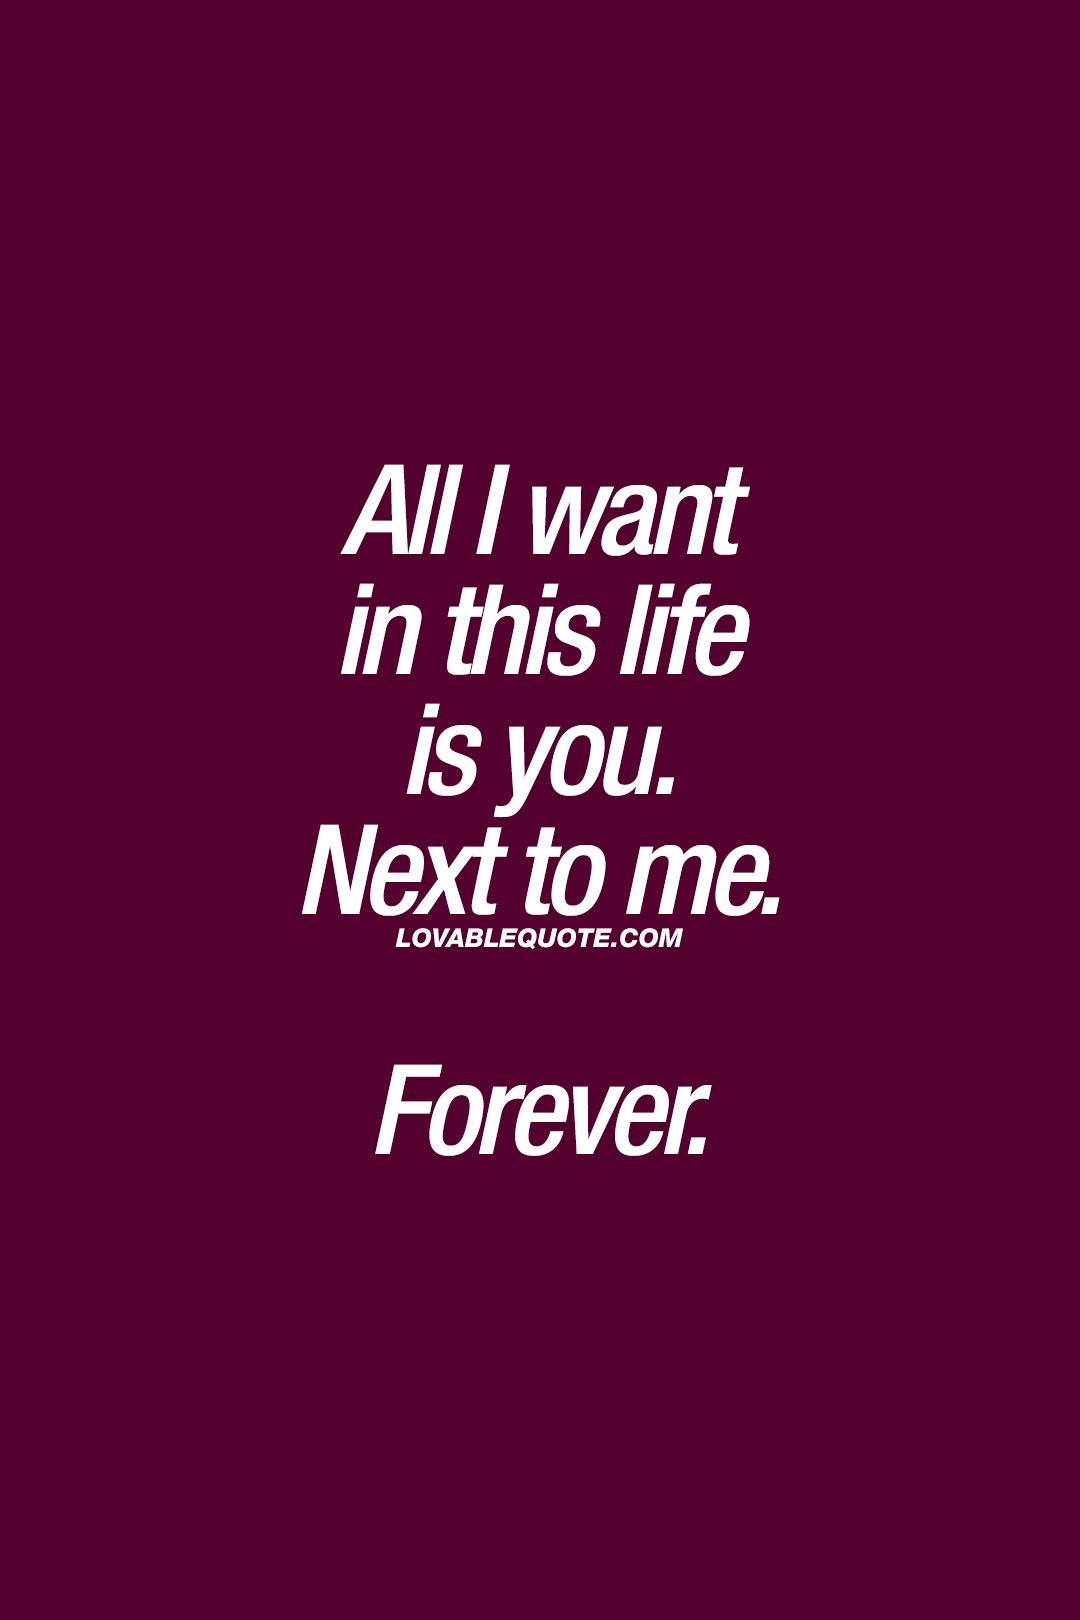 All I Want In This Life Is You Next To Me Forever Truelove Lovequotes My Life Quotes Life Quotes Romantic Quotes